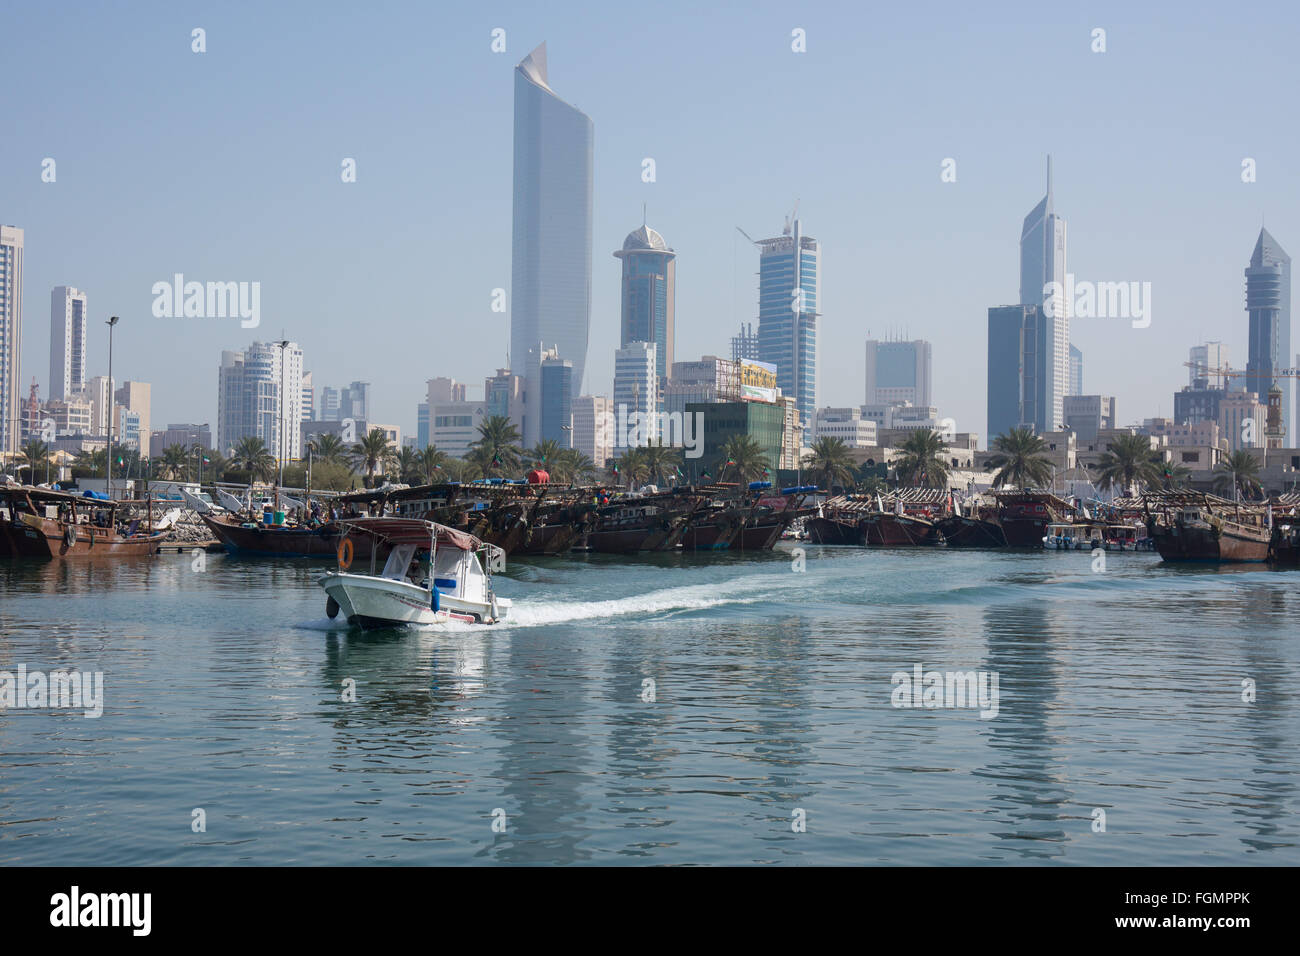 Small boat leaving a harbor in Kuwait city - Stock Image